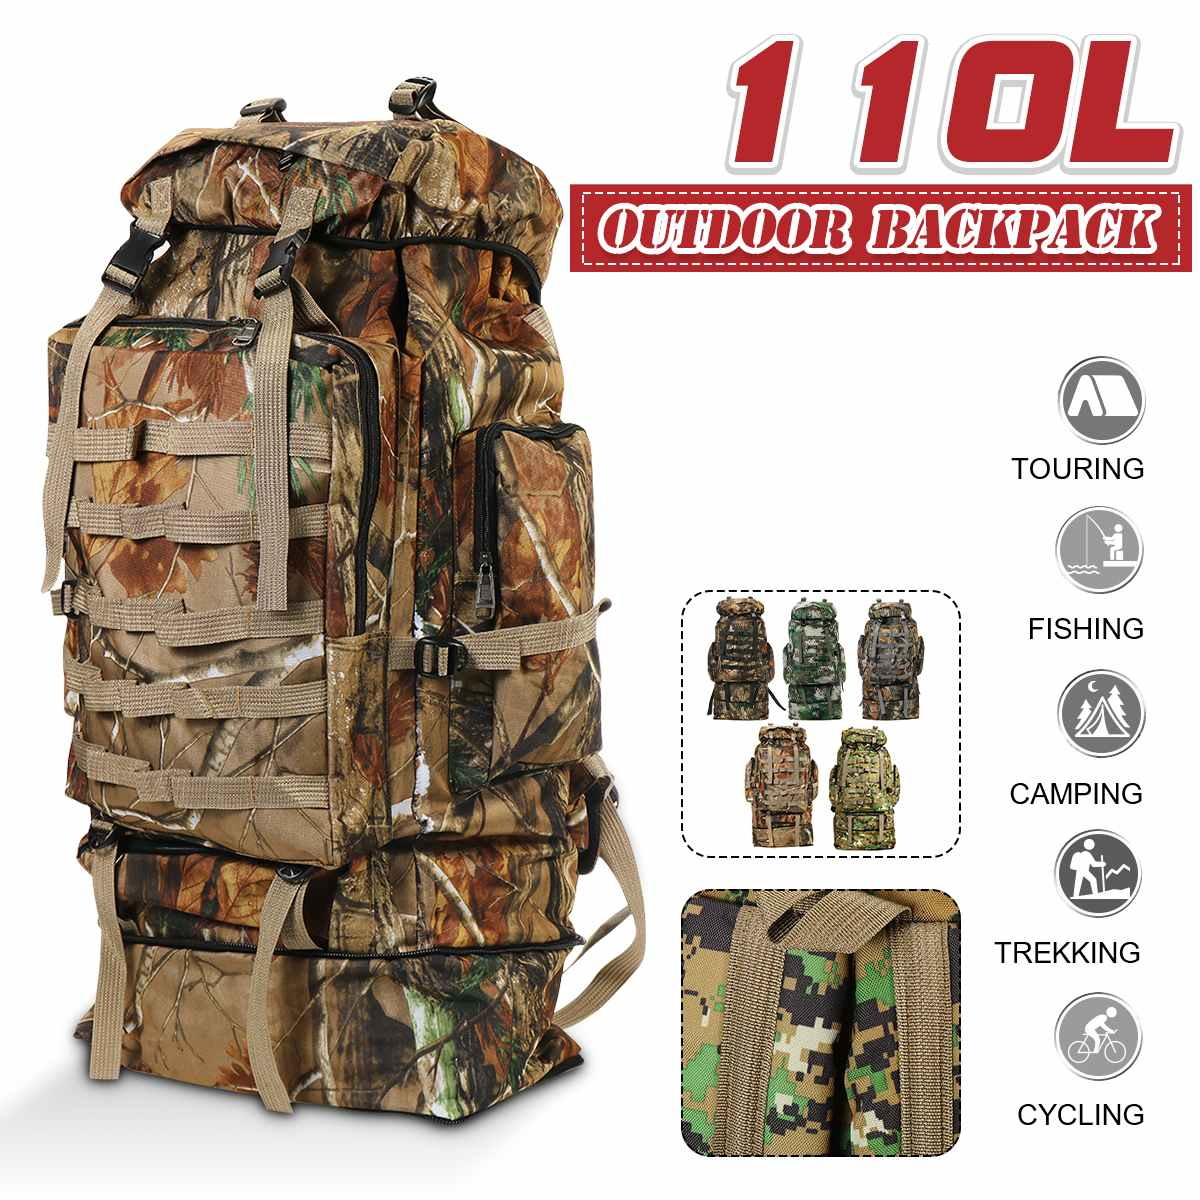 110L Camouflage Military Tactical Backpack Bag Outdoor Travel Hiking Climbing Waterproof Outdoor Camping Hiking Rucksack Bag